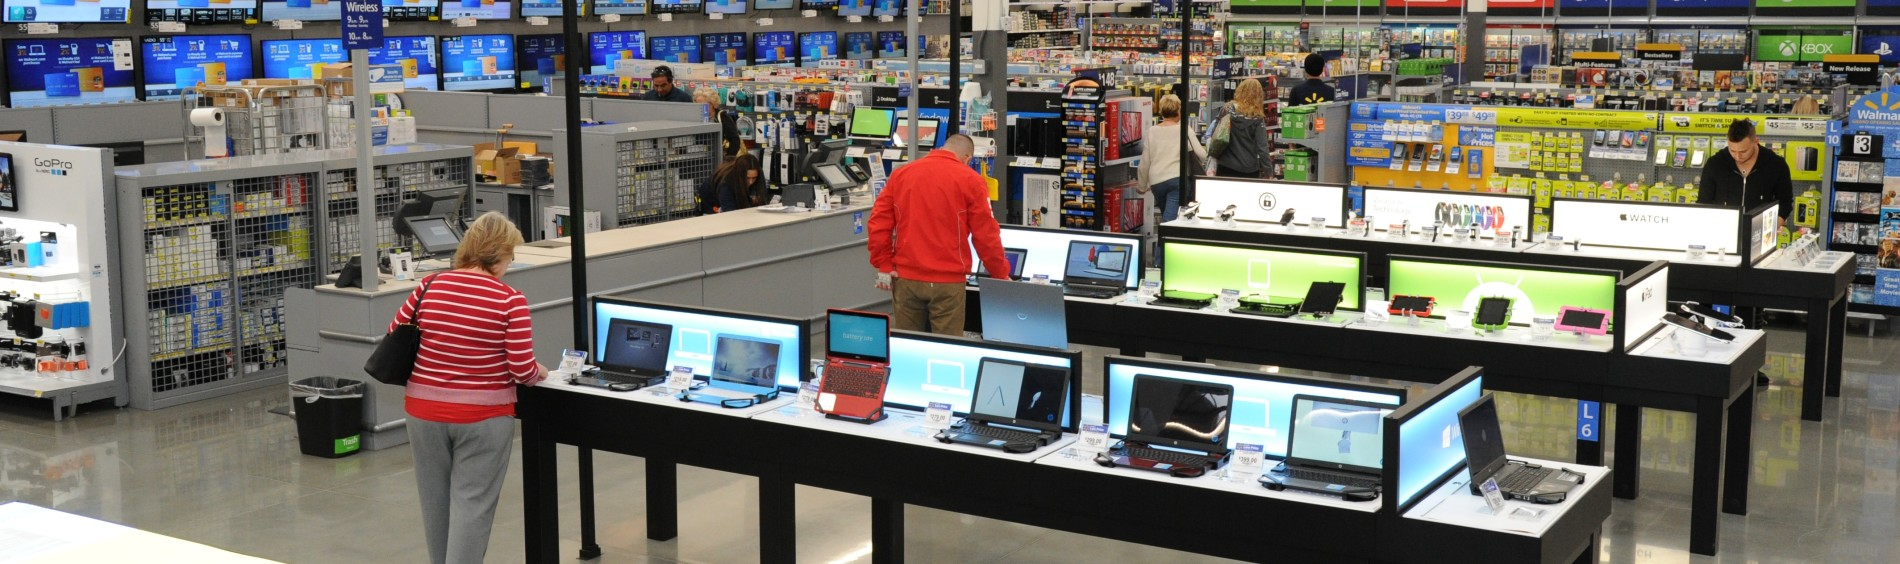 Two customers look on at laptops on tables